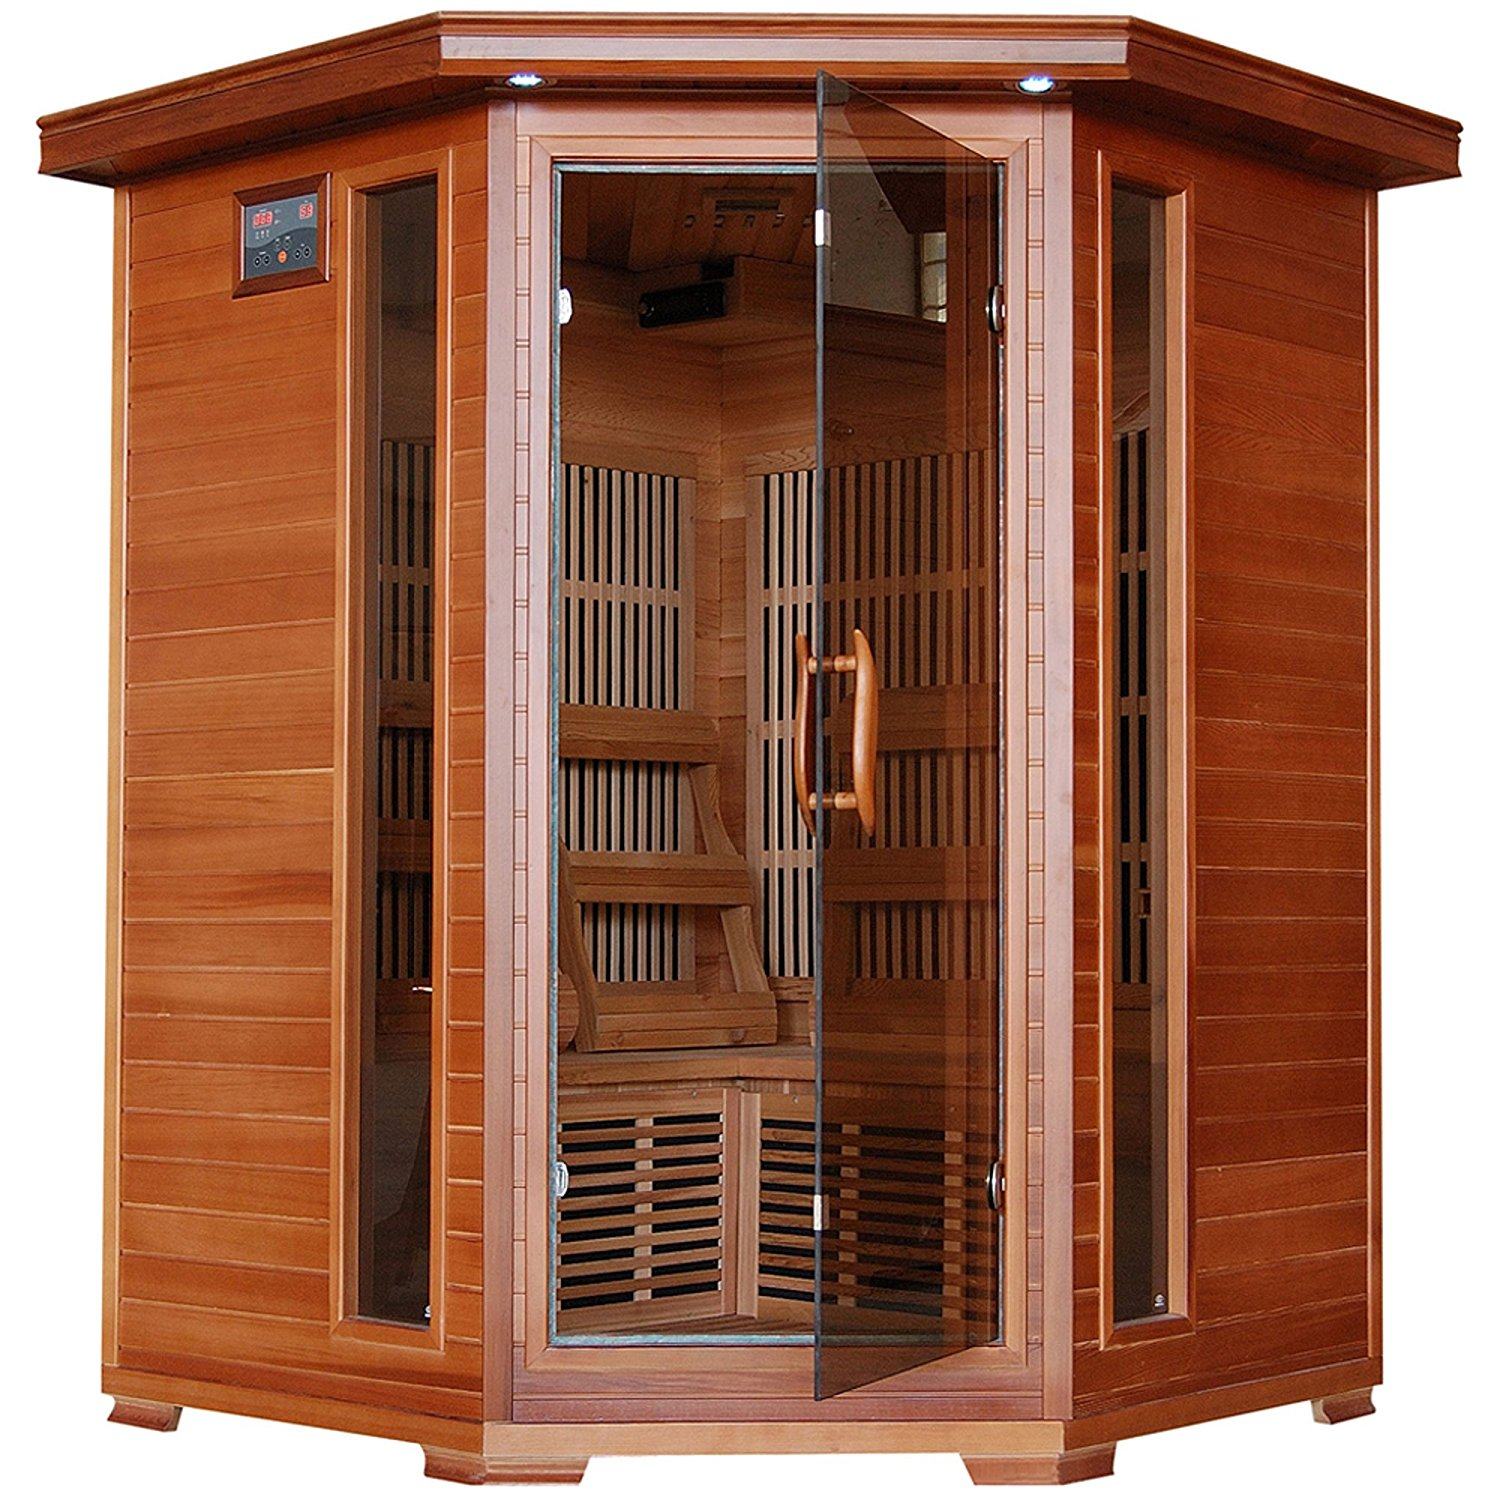 radiant-saunas-3-person-cedar-corner-infrared-sauna